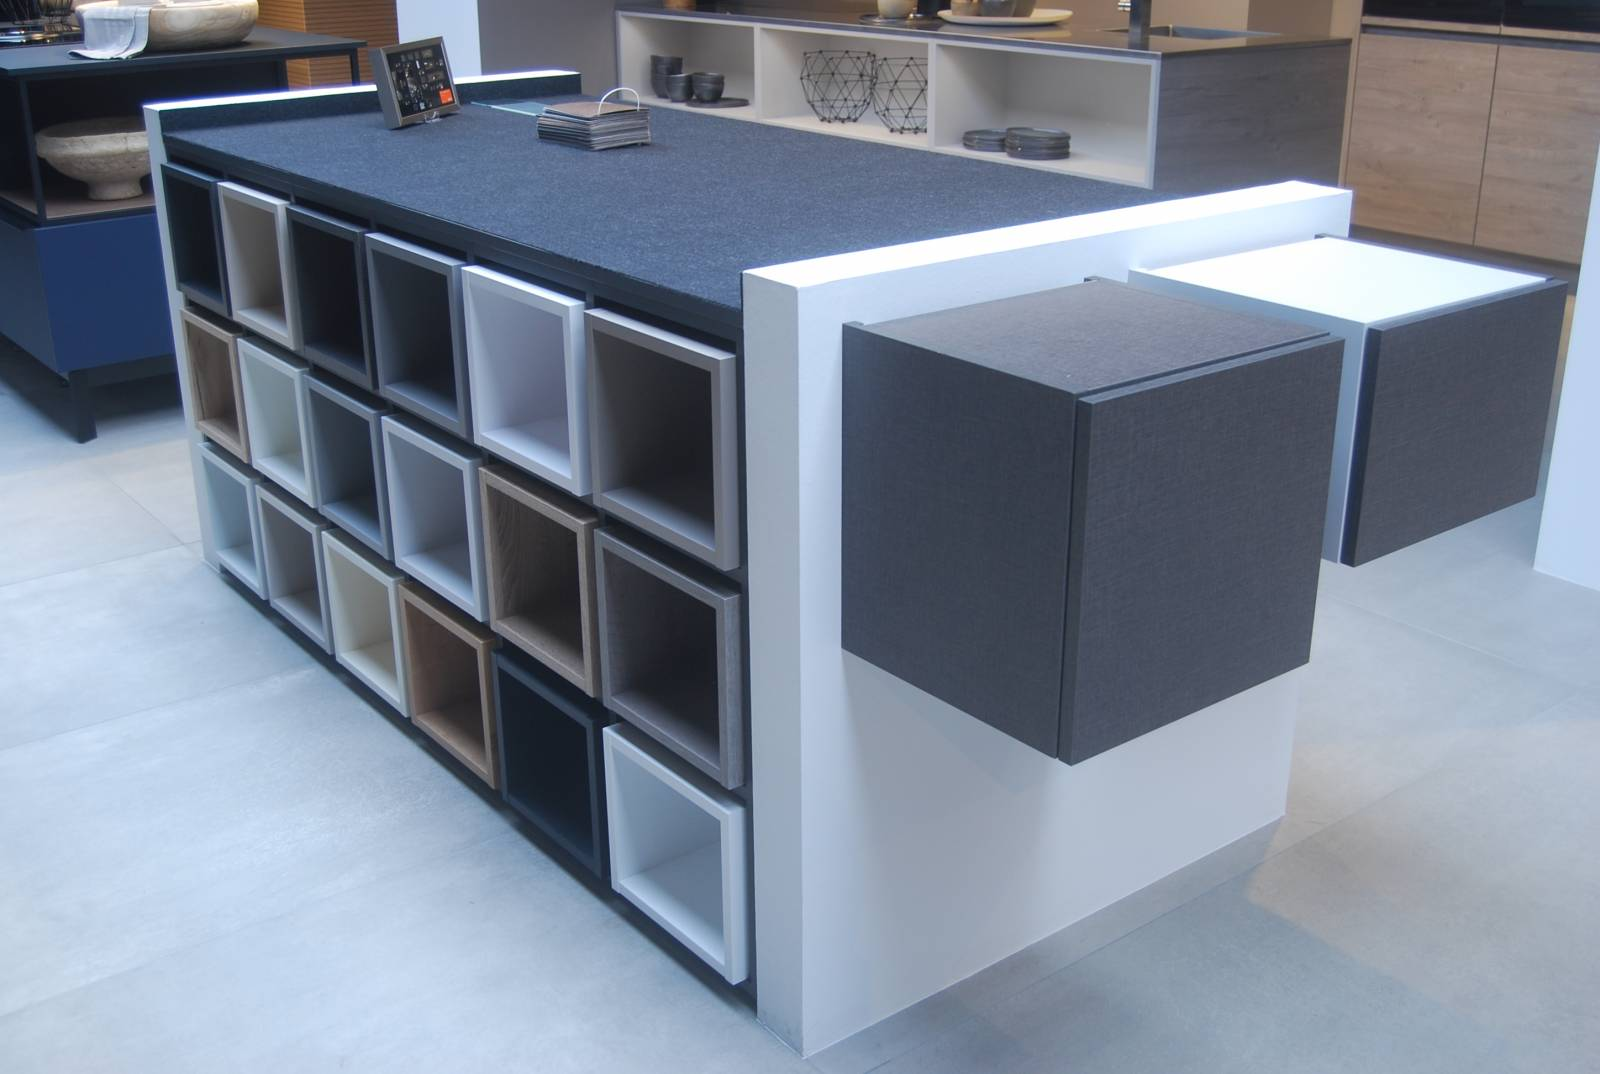 caissons de meubles de cuisine cuisiniste haut de gamme lyon am nagement cuisine. Black Bedroom Furniture Sets. Home Design Ideas